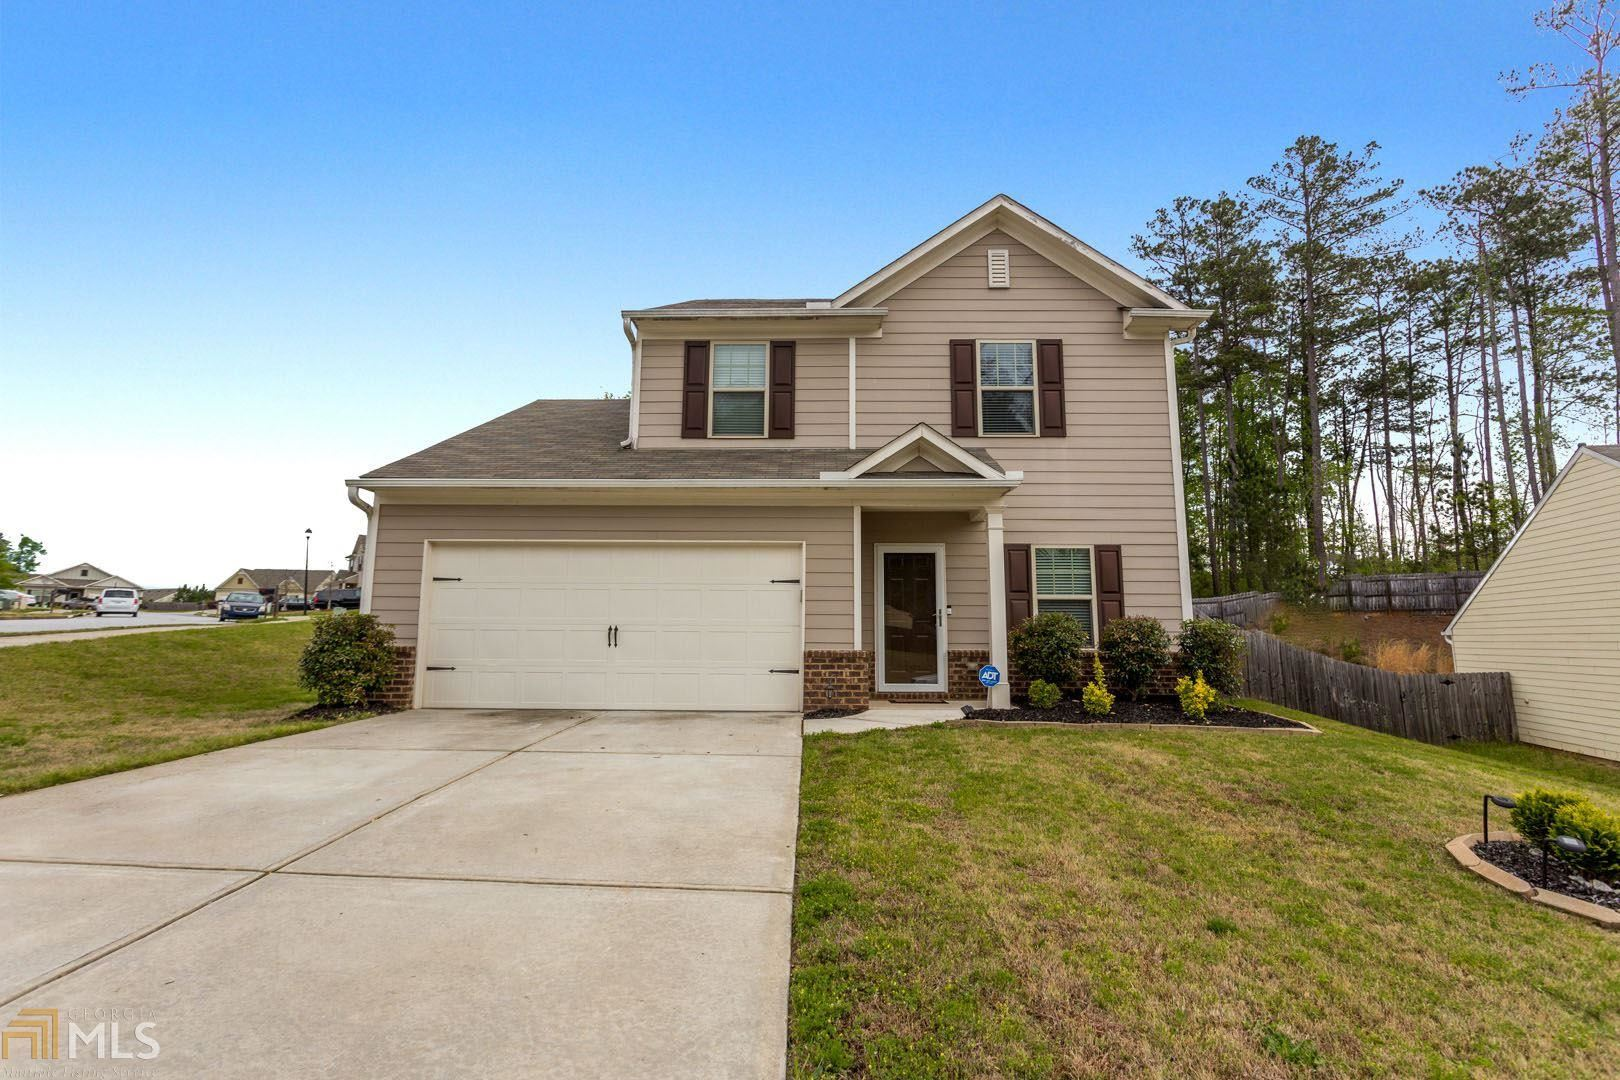 7291 St Agnes Way, Fairburn, GA 30213 - #: 8961426